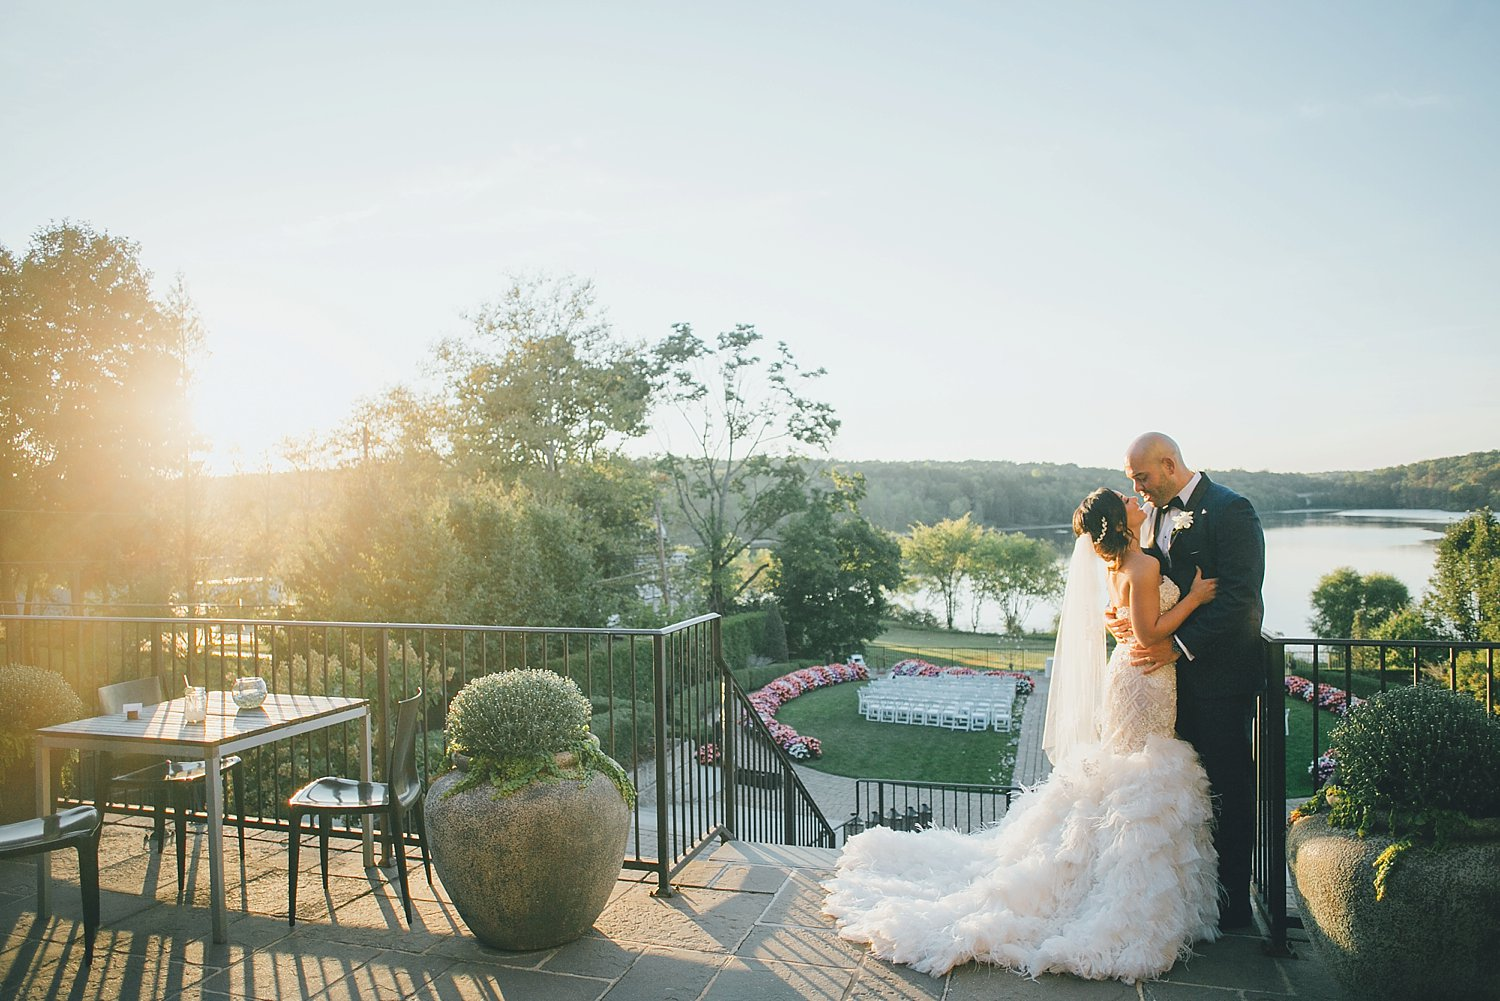 nyc-wedding-photography-nj-tri-state-cinematography-intothestory-by-moo-jae_0337.jpg